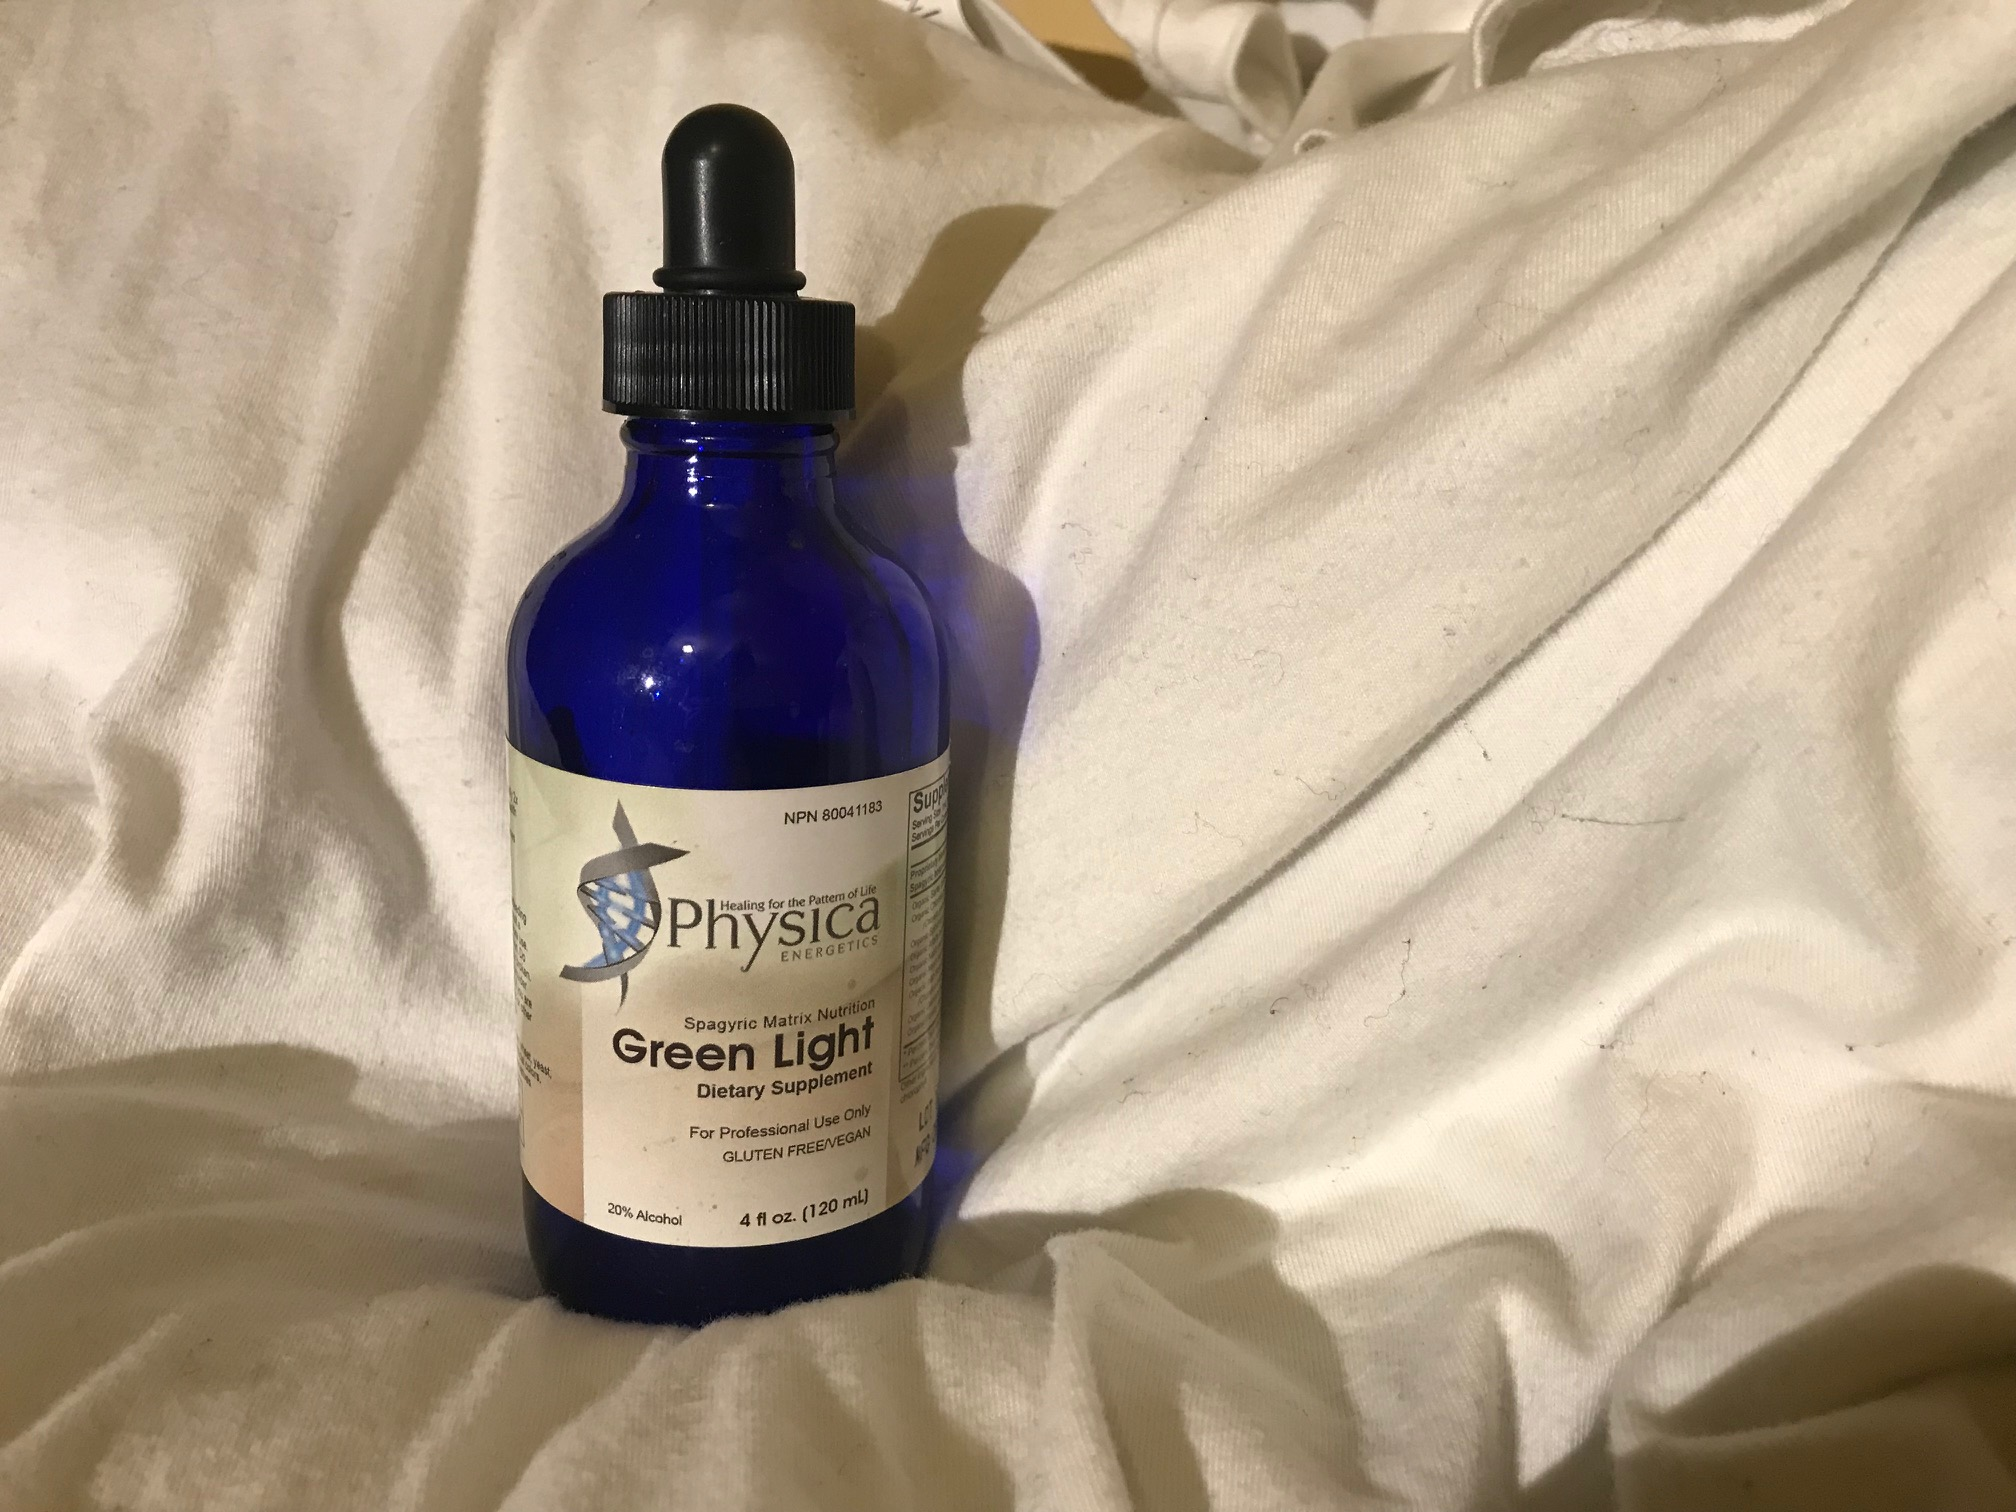 Blue Glass Four Ounce Bottle for Physica Green Light Dietary Supplement: Positive for trace low levels of Cadmium and Antimony (considered safe.)